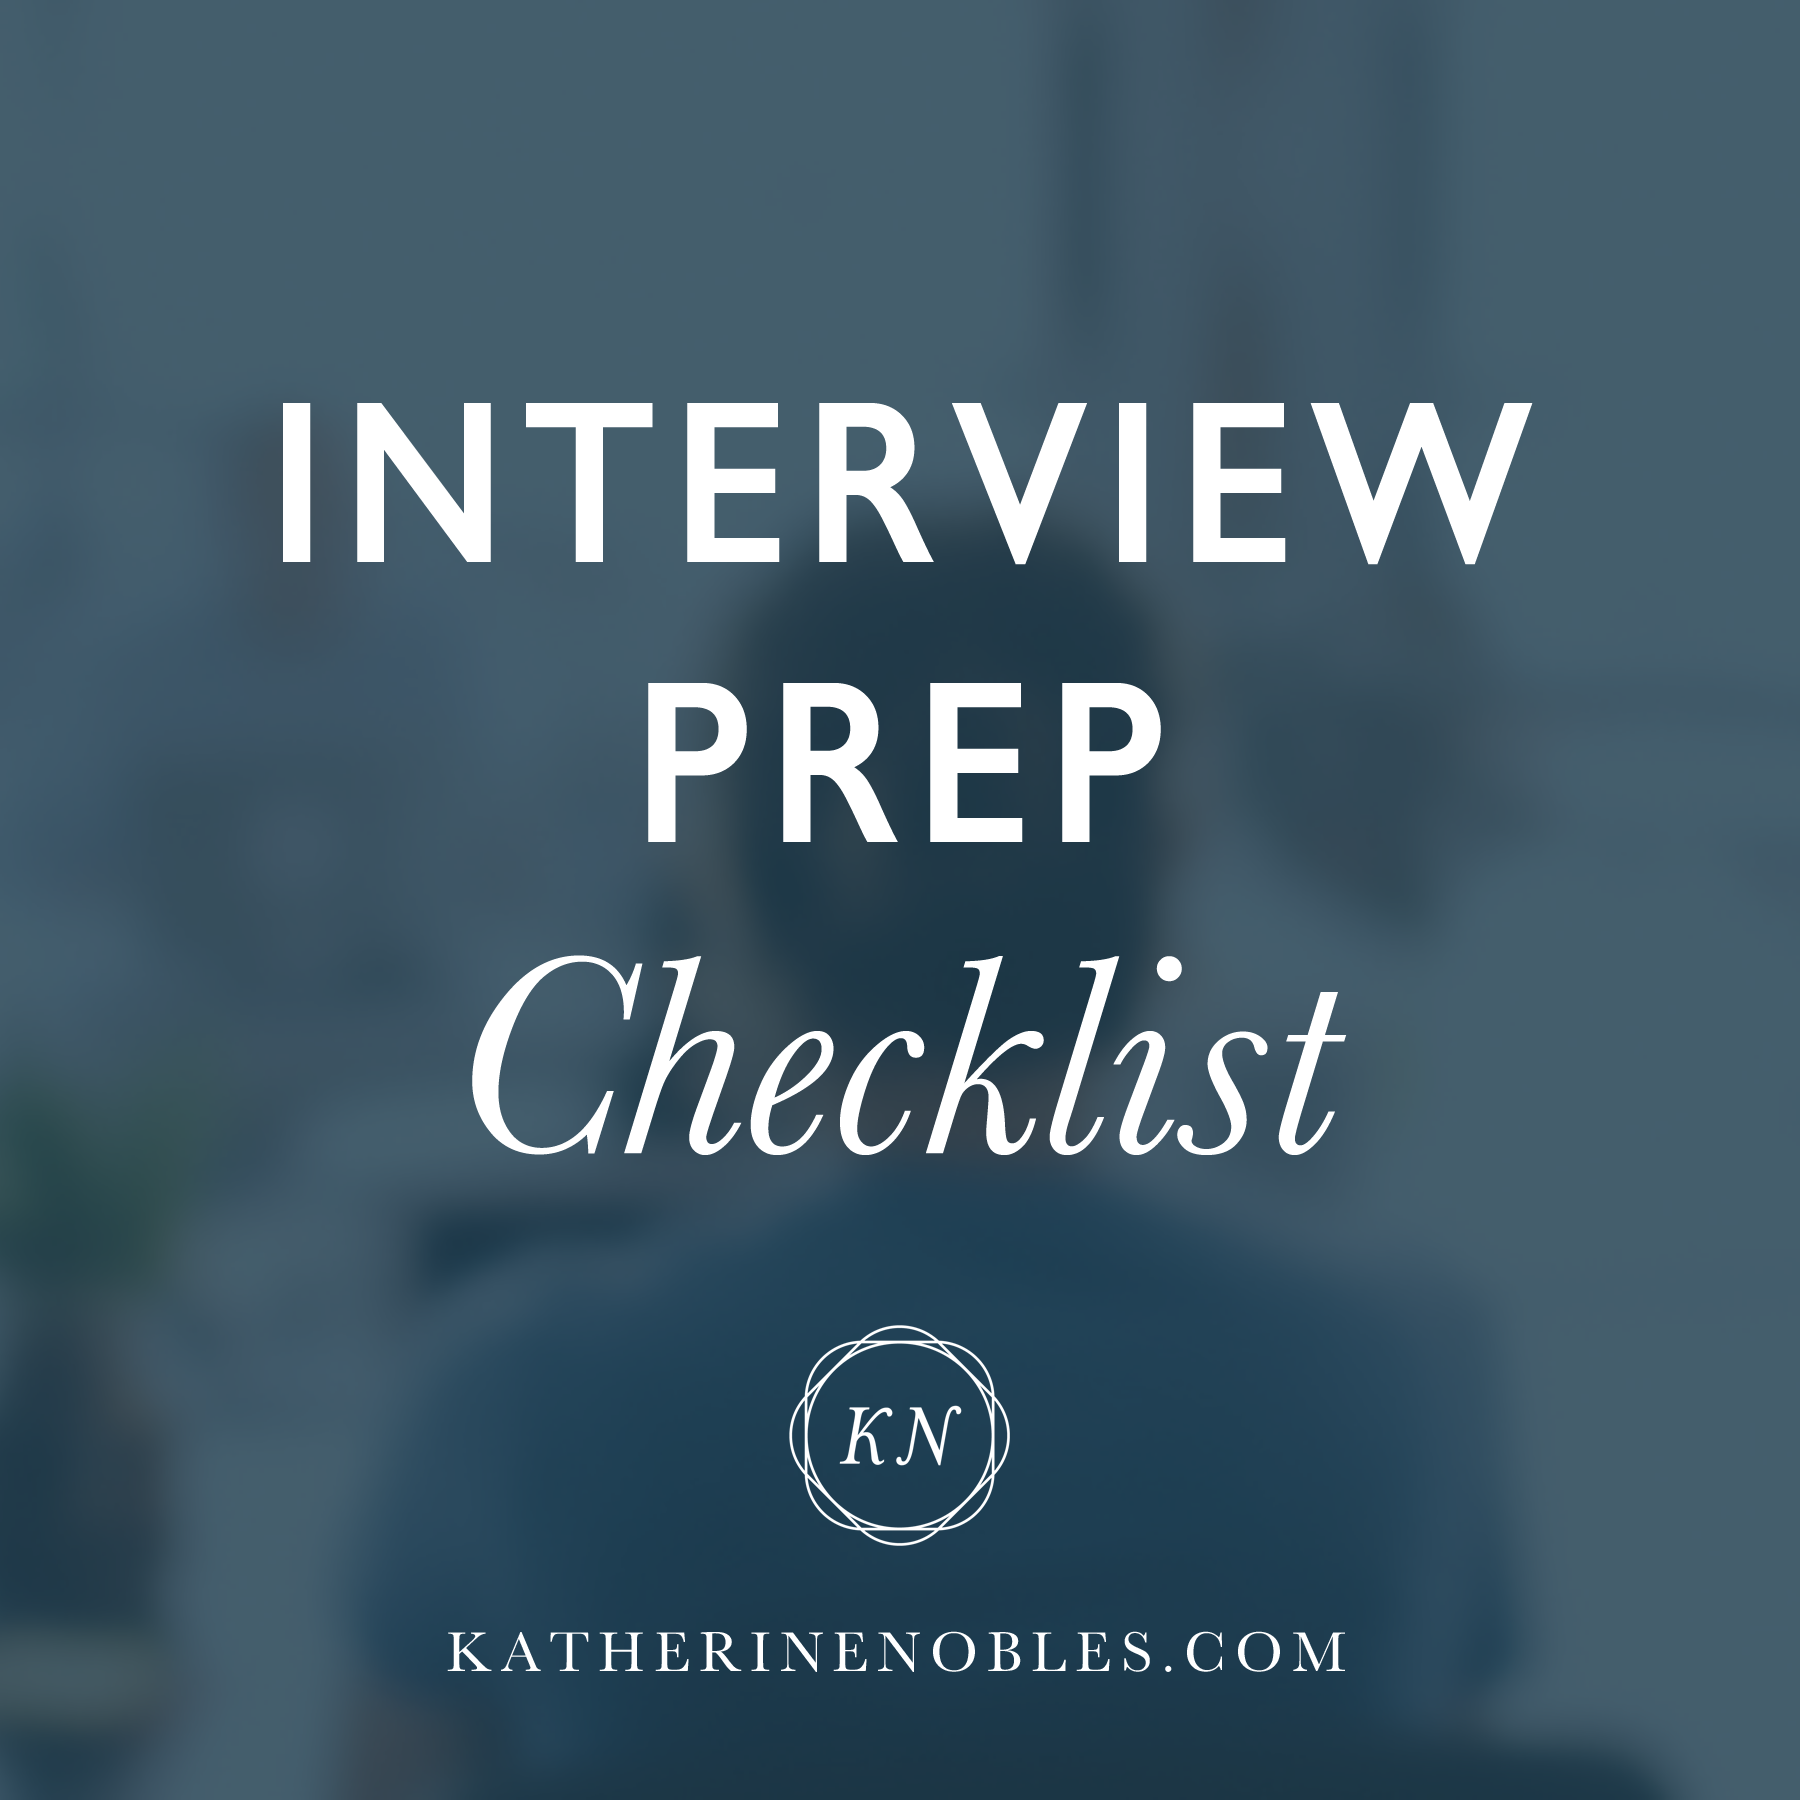 Interview Prep Checklist